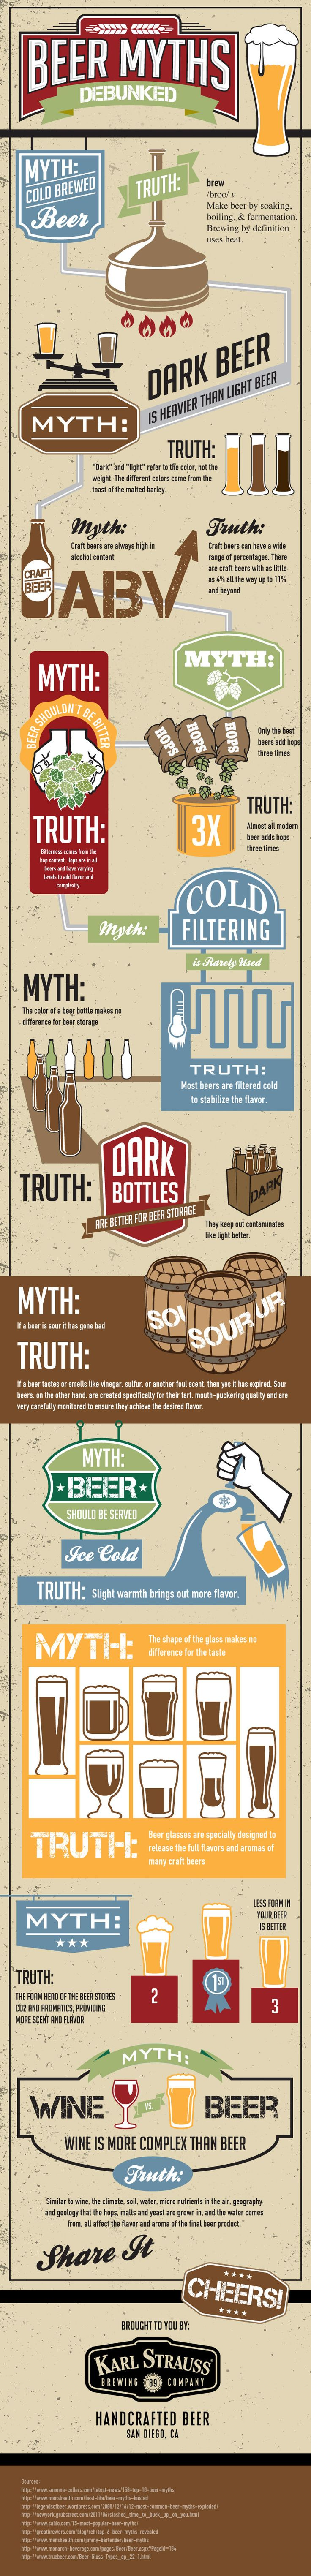 A look at a range of #beer myths that are often taken as fact - Find out more in this #infographic - http://www.finedininglovers.com/blog/food-drinks/infographic-beer-myths-debunked/